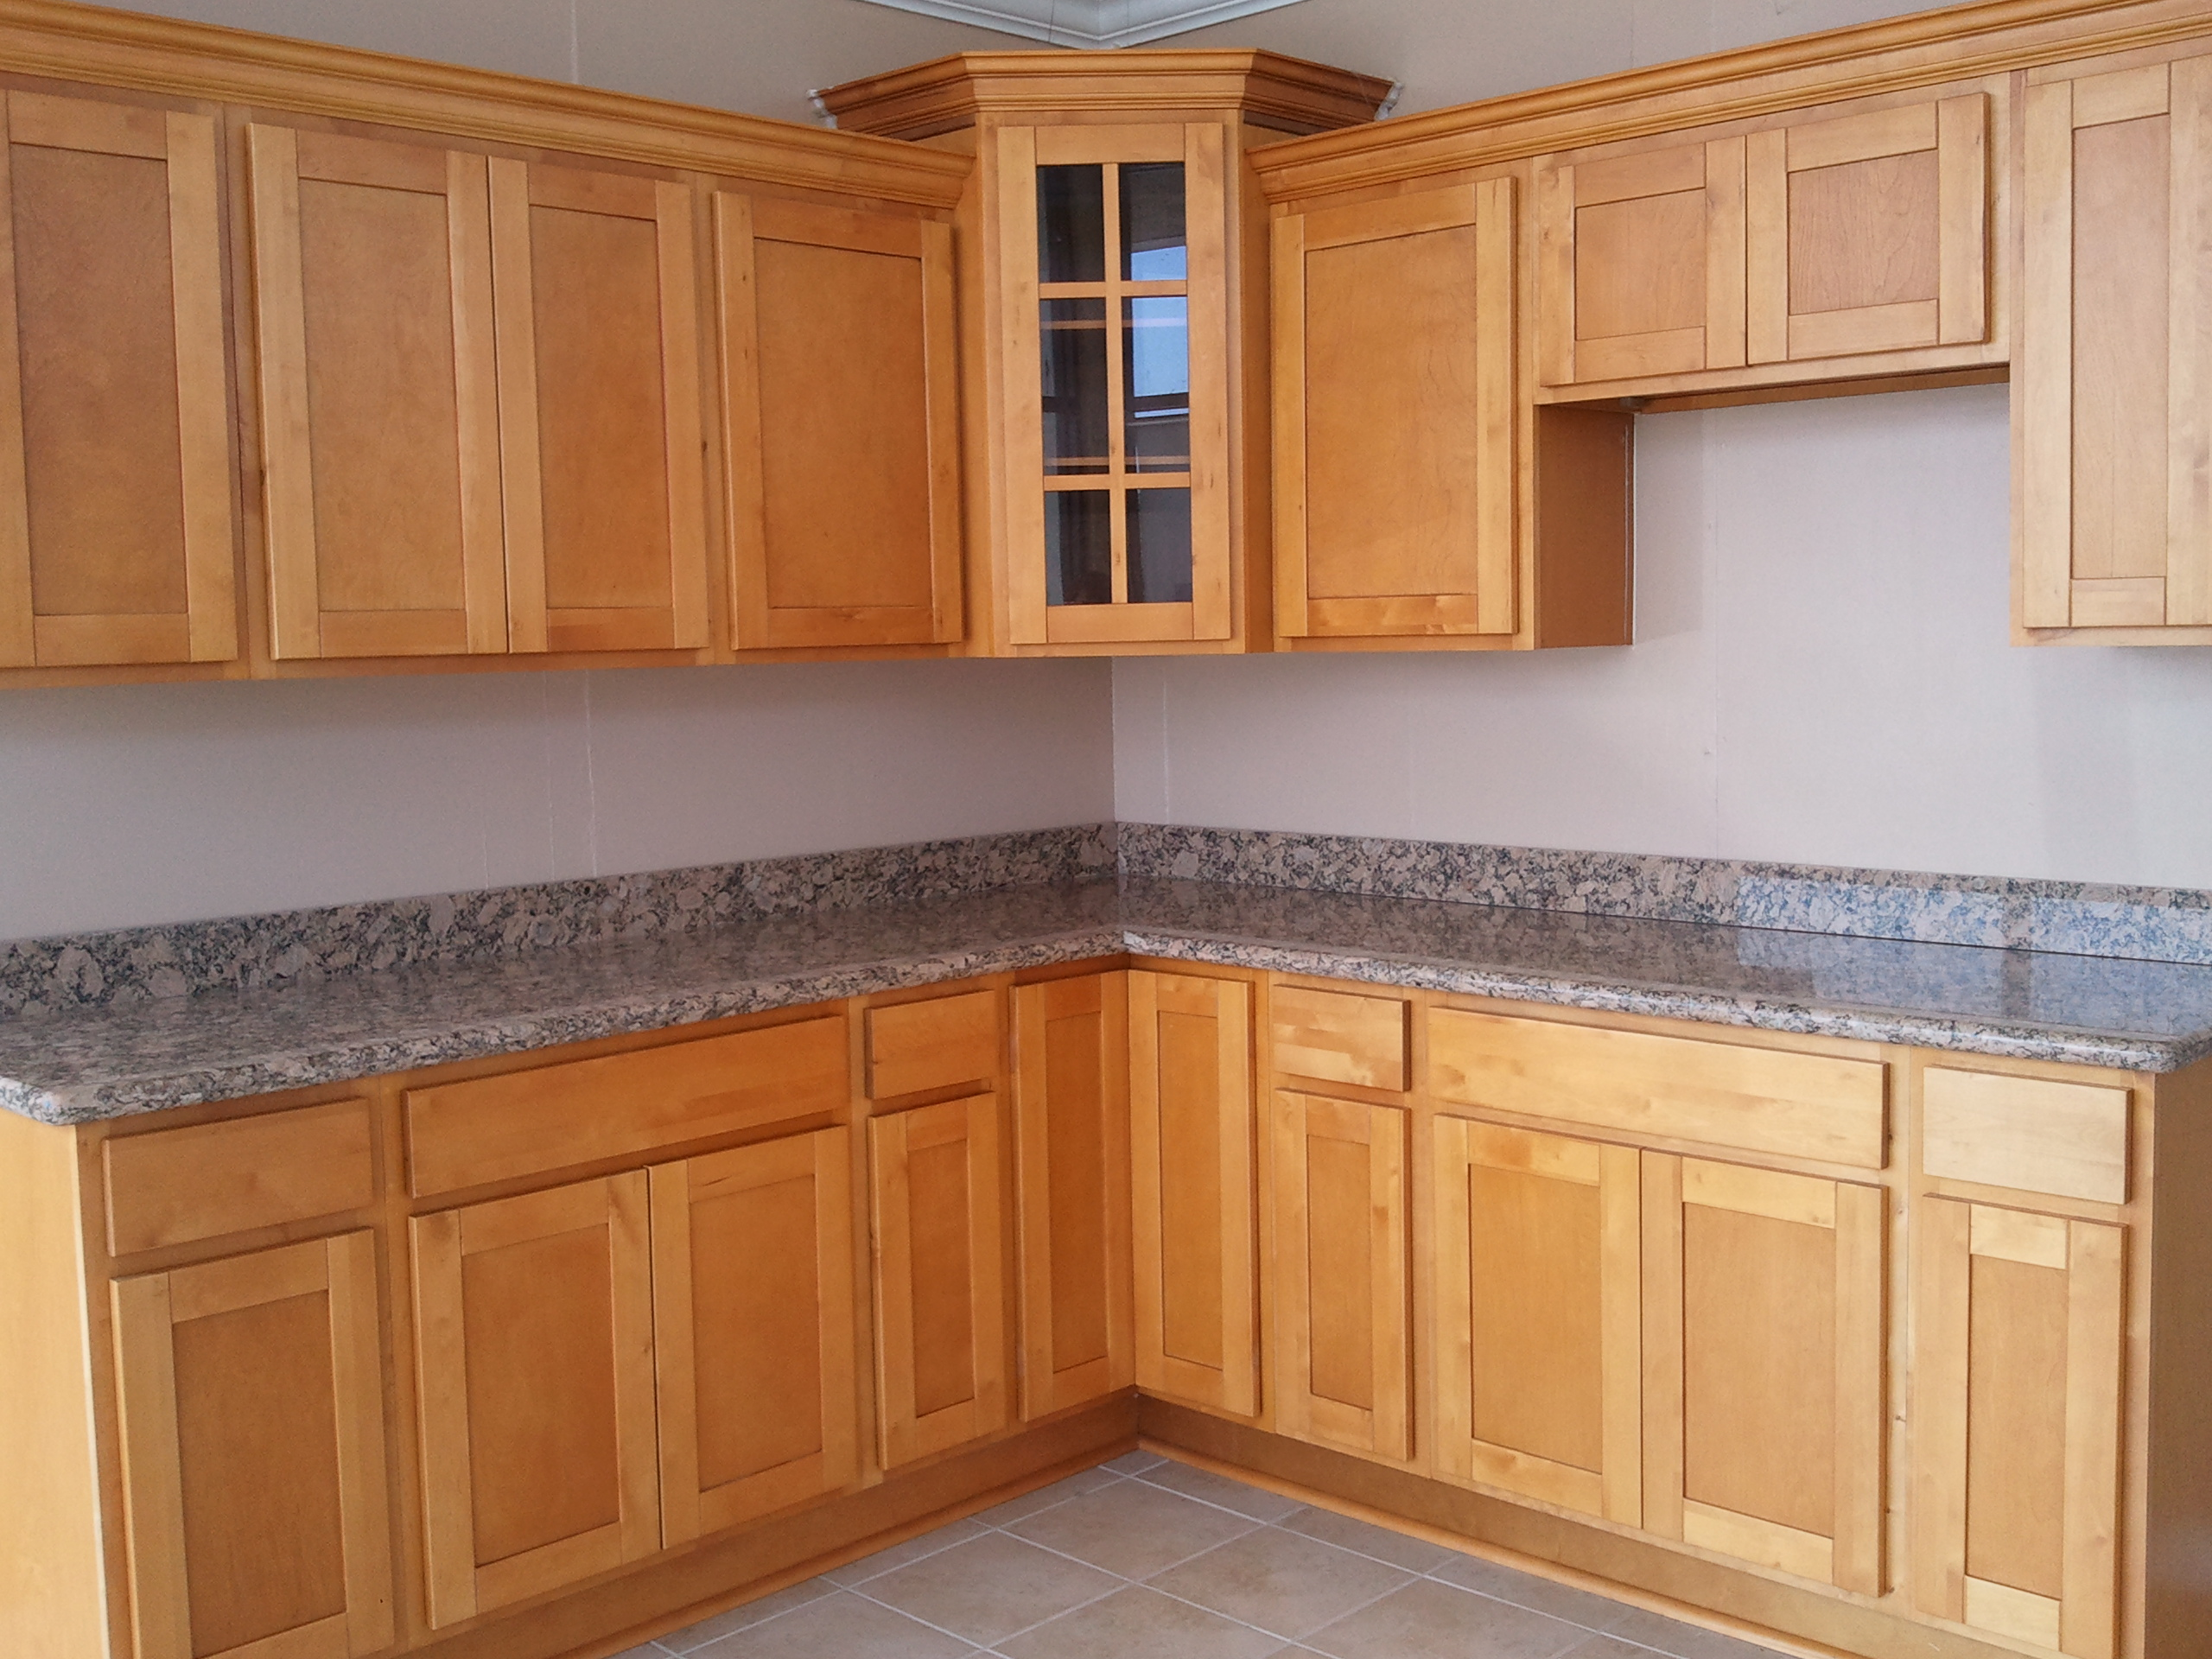 Discount kitchen cabinets sacramento for Bargain kitchen cabinets